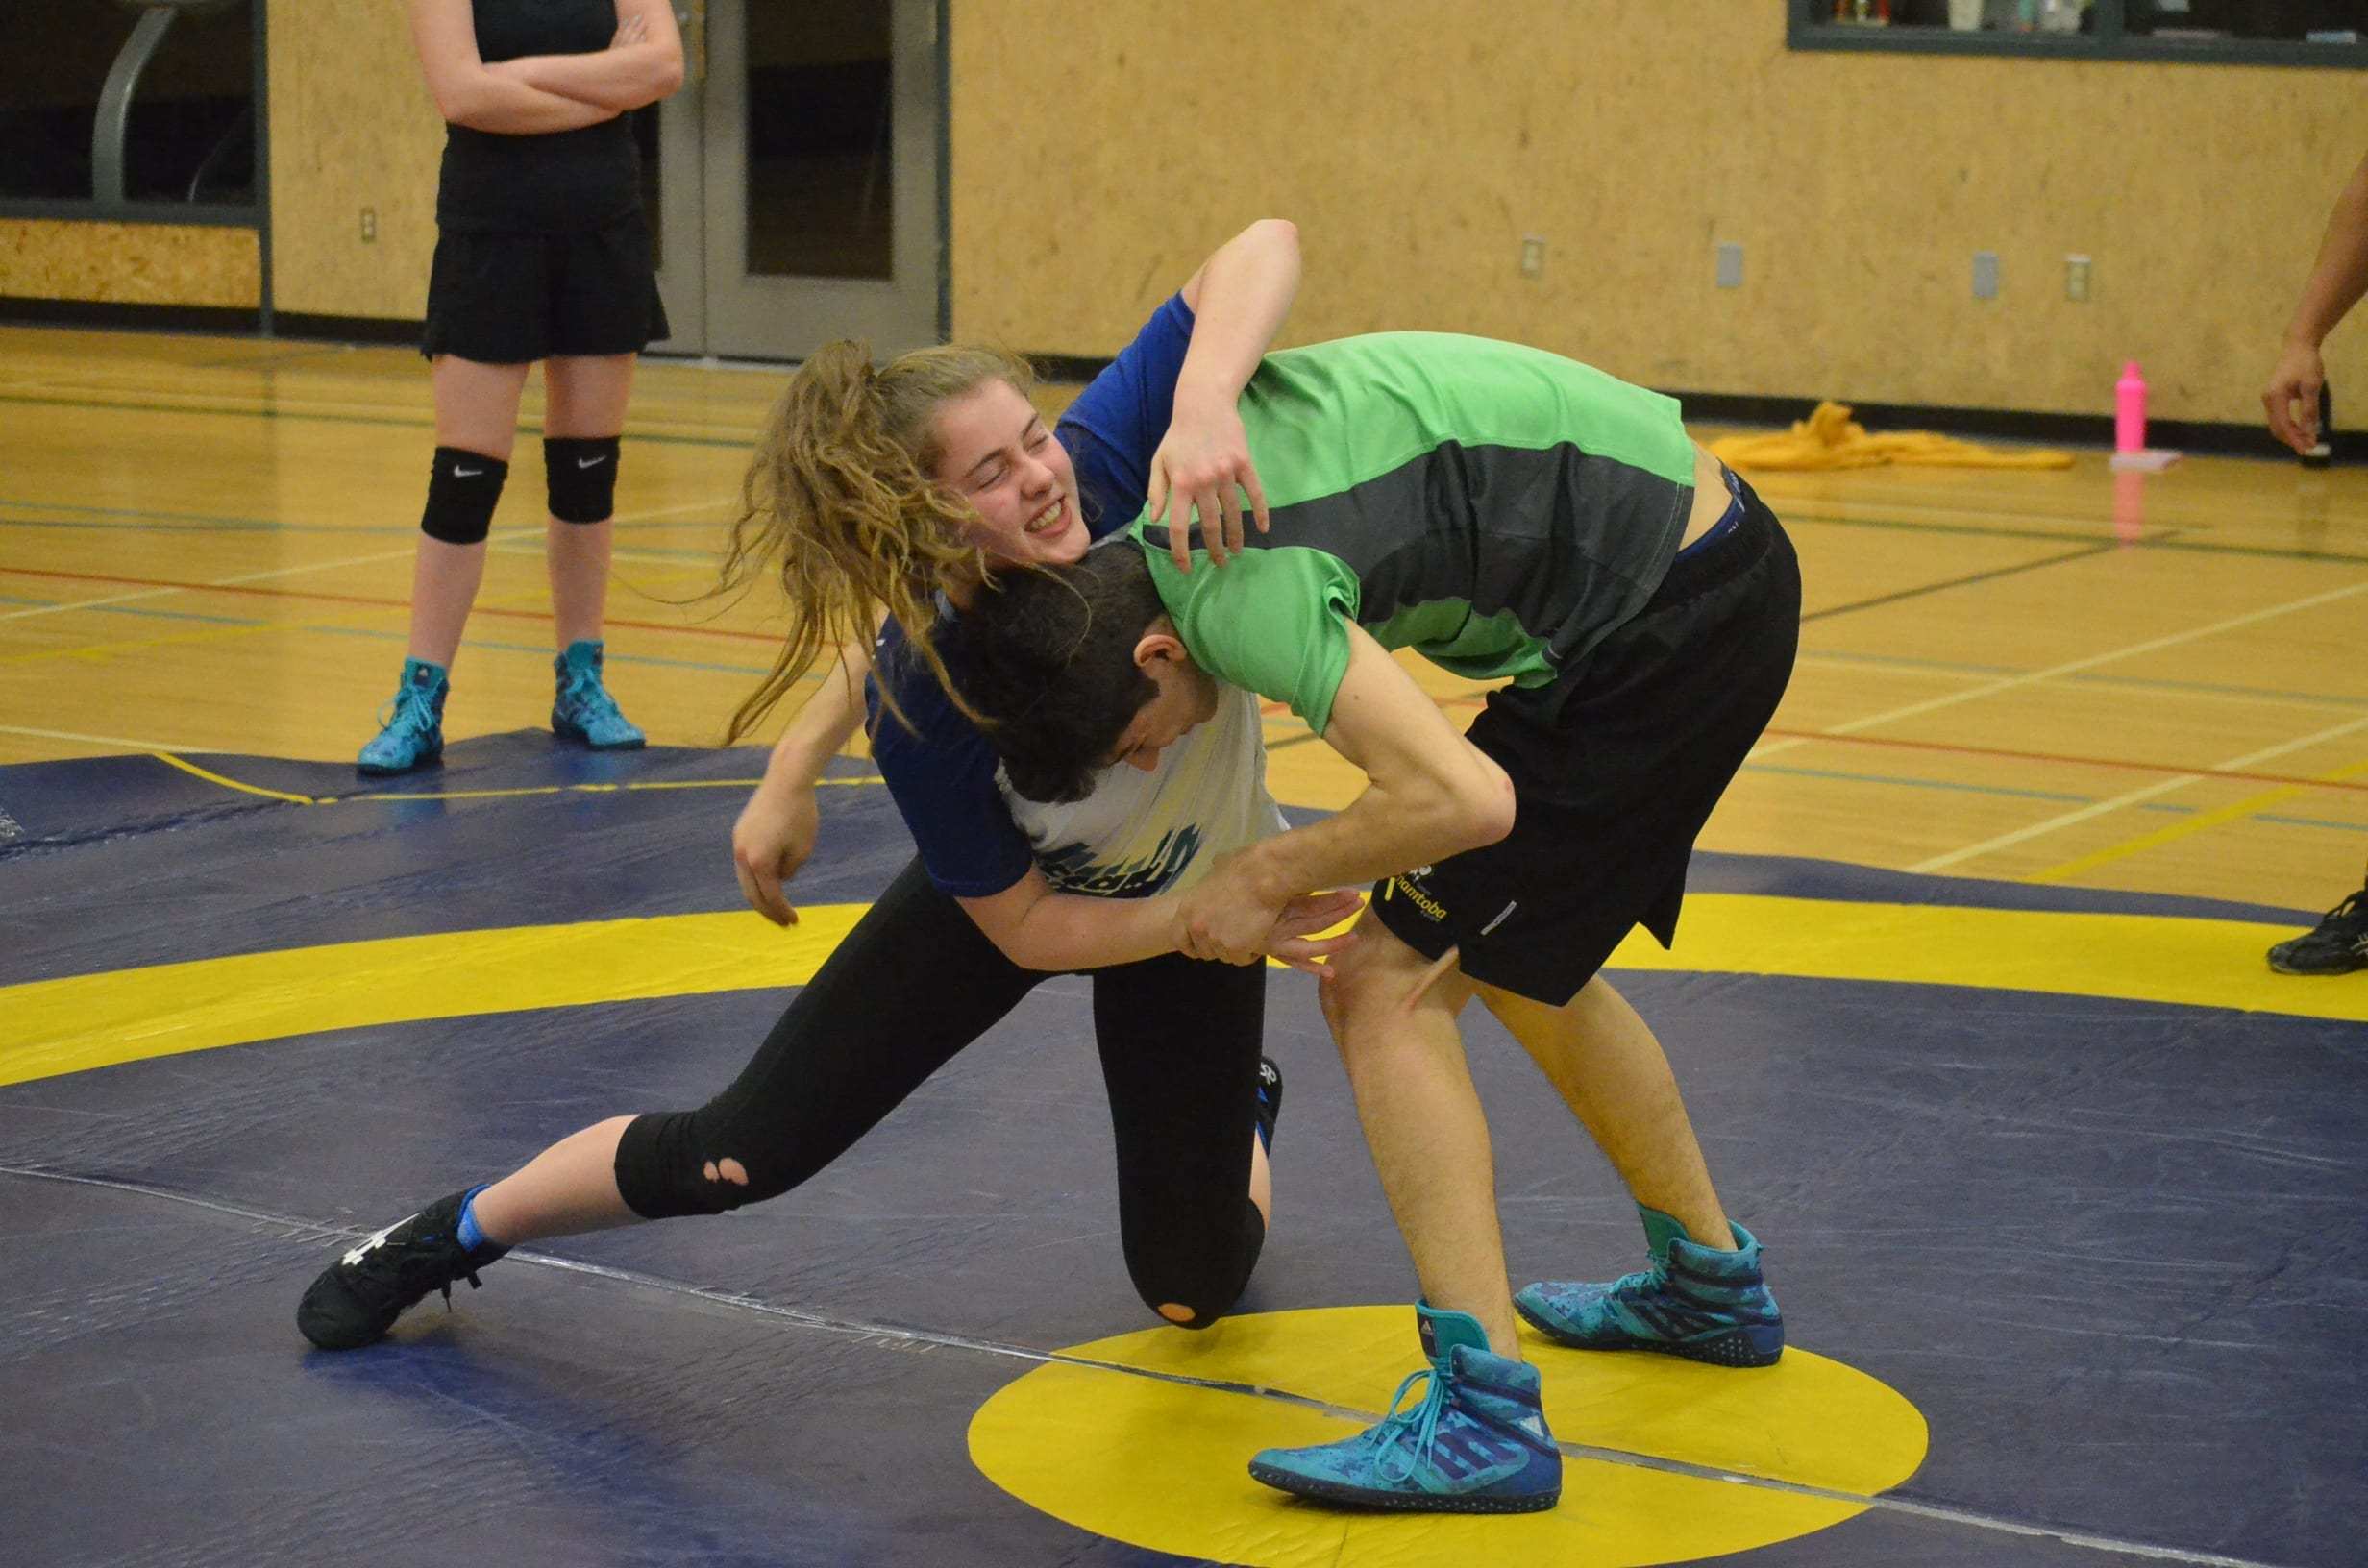 Ava Applejohn tries to get the upper hand on Quinn Critch during the wrestling trials at St. Pat's Gymnasium back in January. Both of them are now going to have to find other ways to enjoy March break following the cancellation of the Games by the host society in Whitehorse on Saturday. NNSL file photo